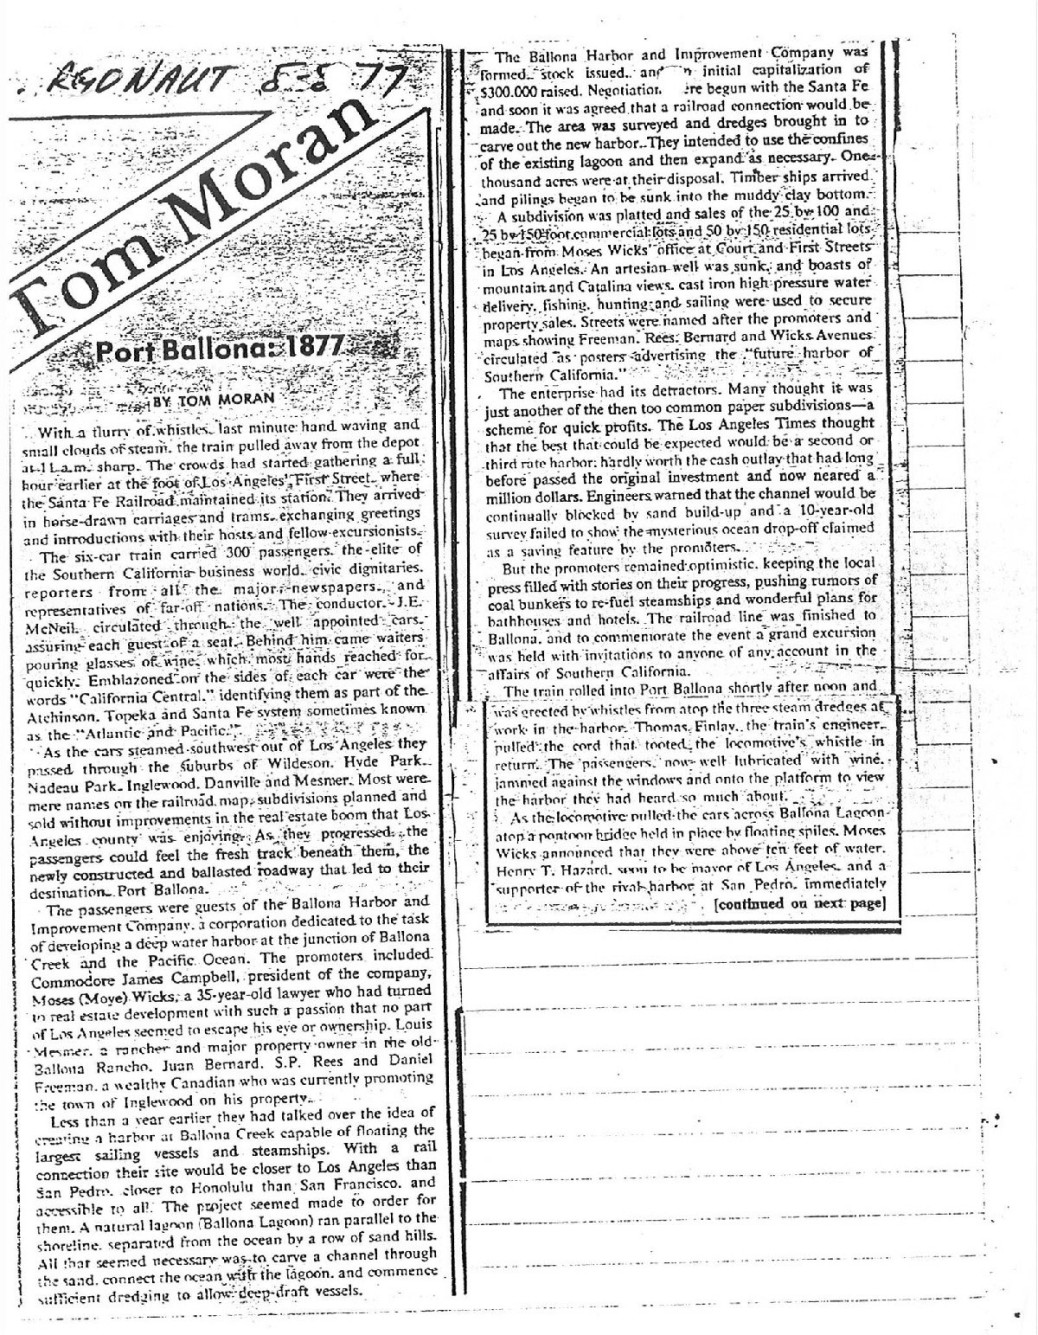 1977 Aug 5 Argonaut Tom Moran Port Ballona Article 1